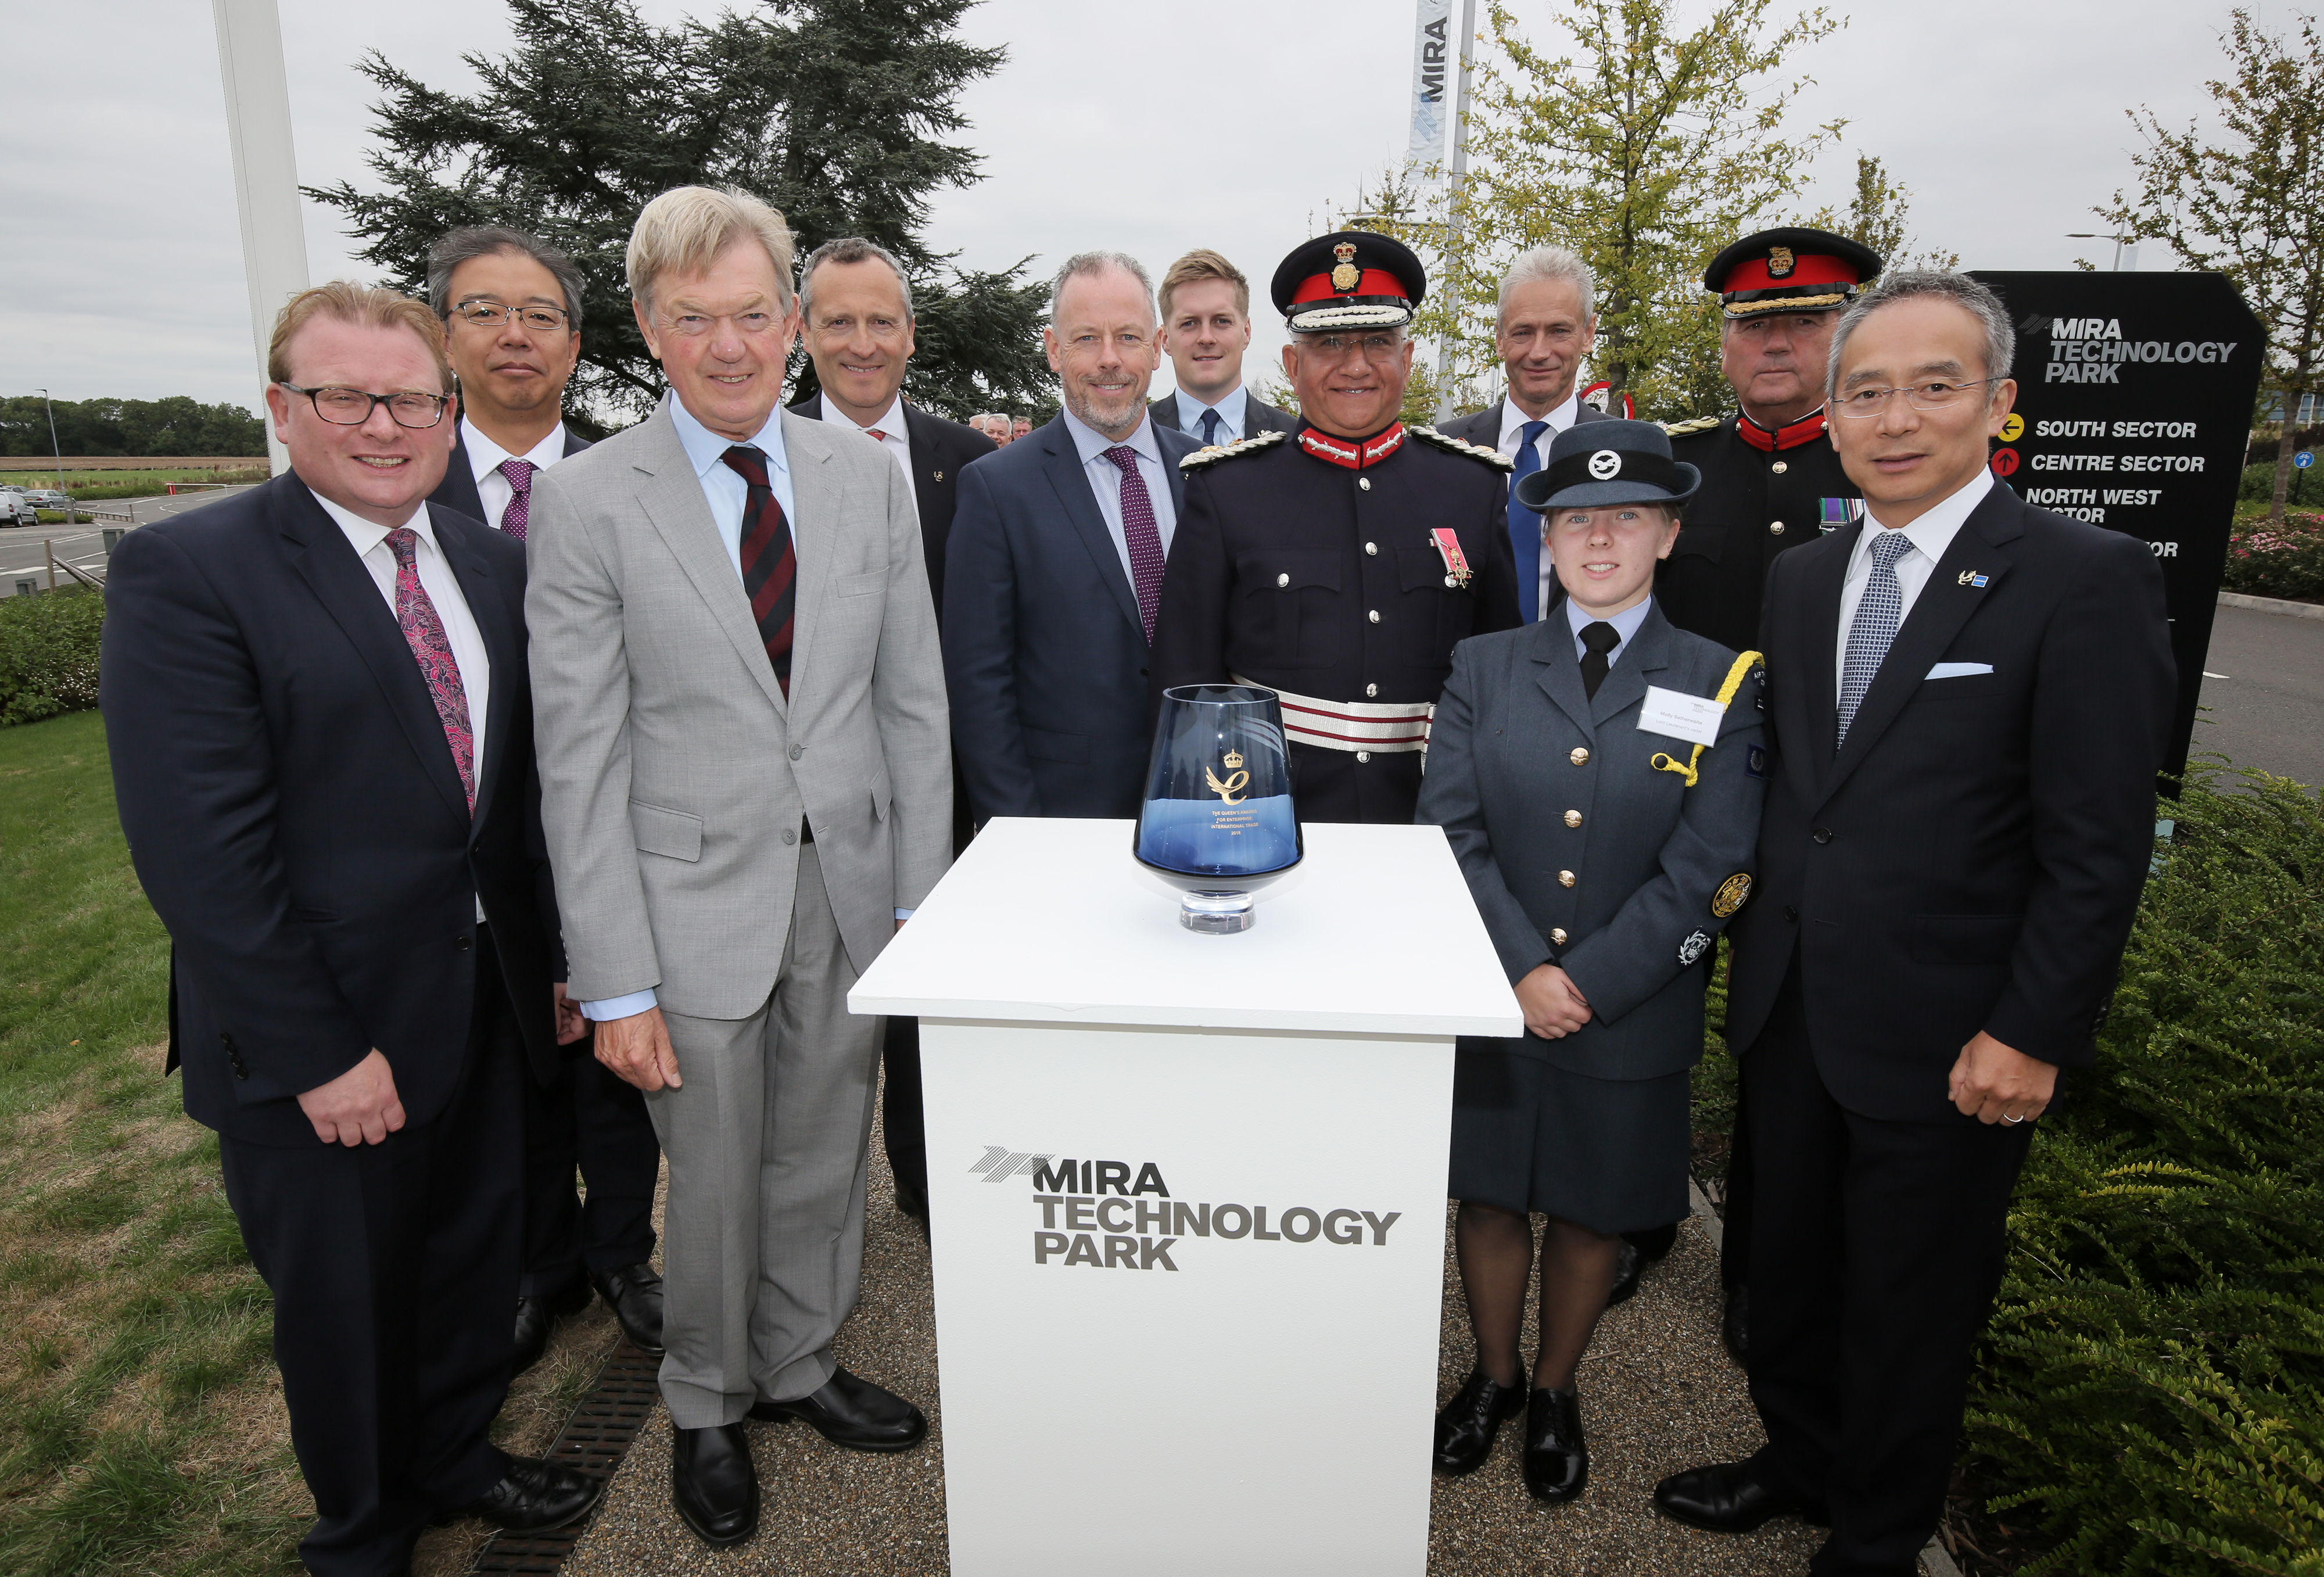 MIRA Technology Park Awarded for its Sustained International Growth